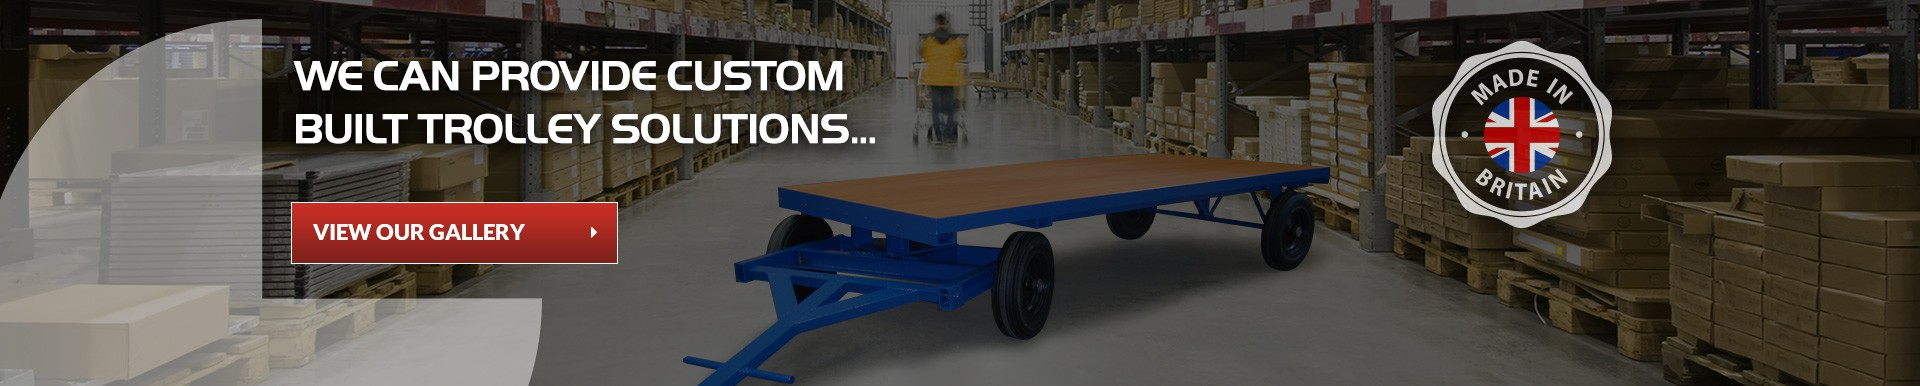 We Can Provide Custom Built Trolley Solutions - View Our Gallery